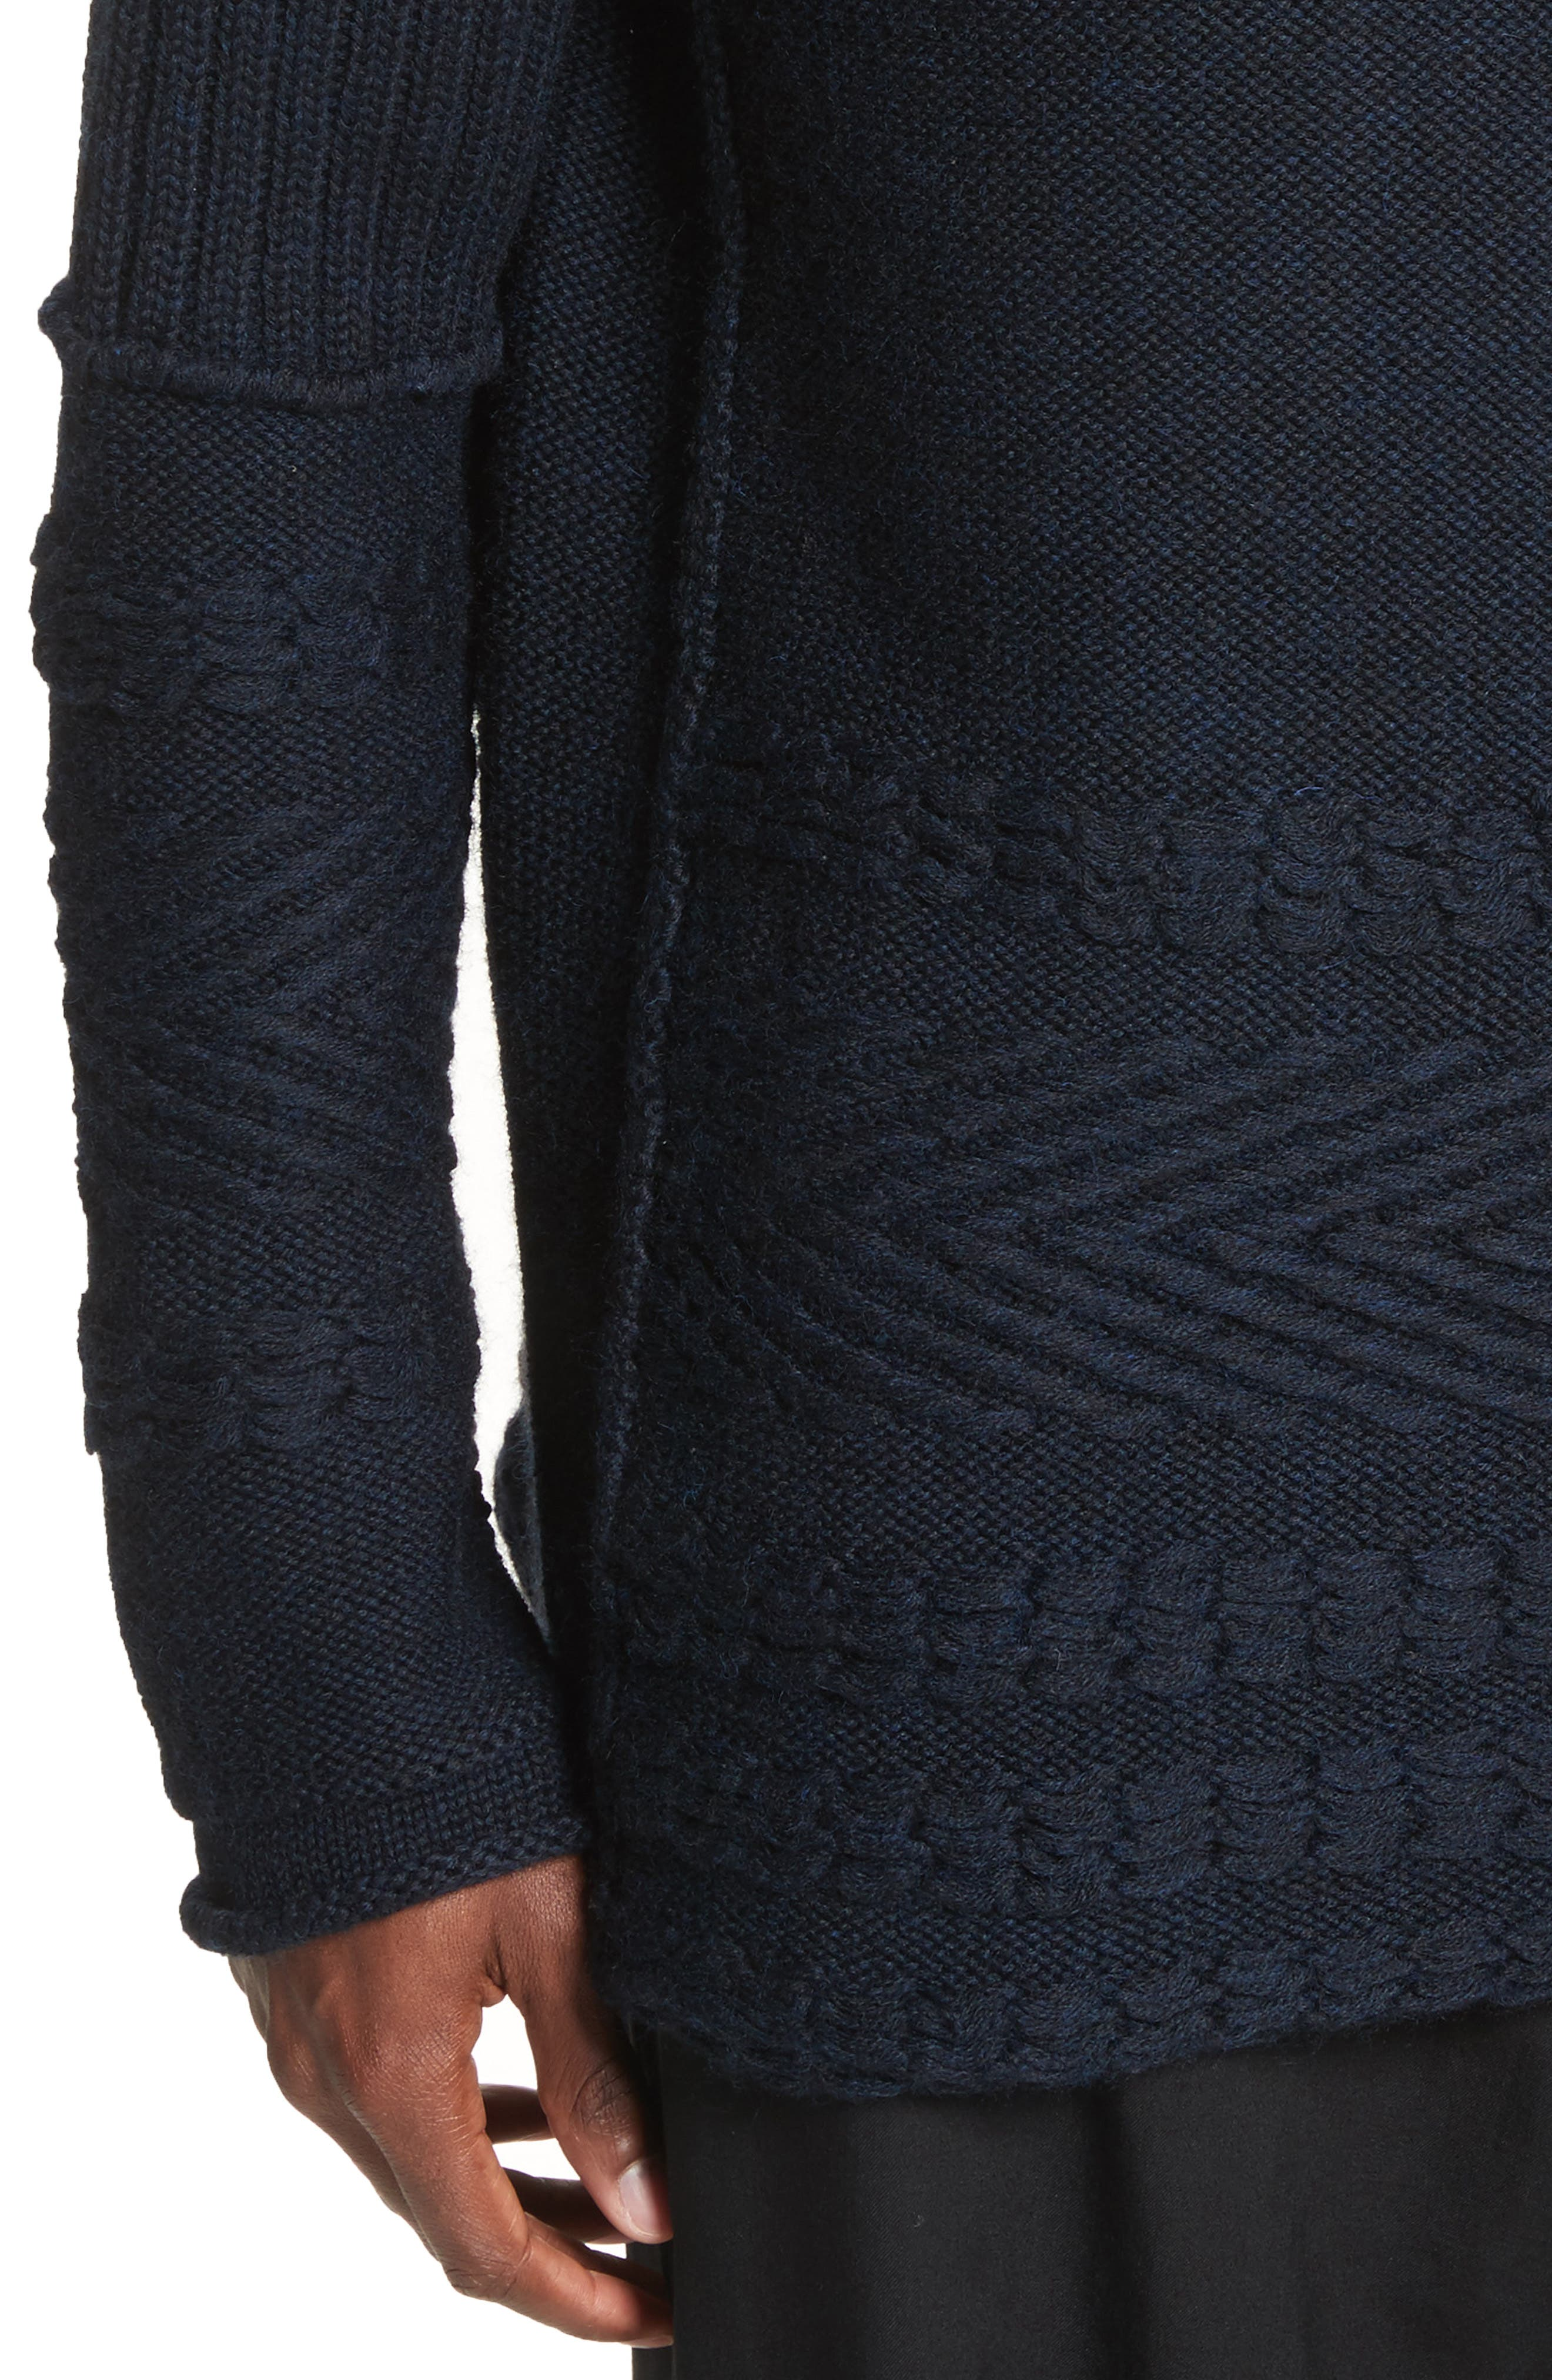 Mixed Knit Wool Sweater,                             Alternate thumbnail 4, color,                             Navy